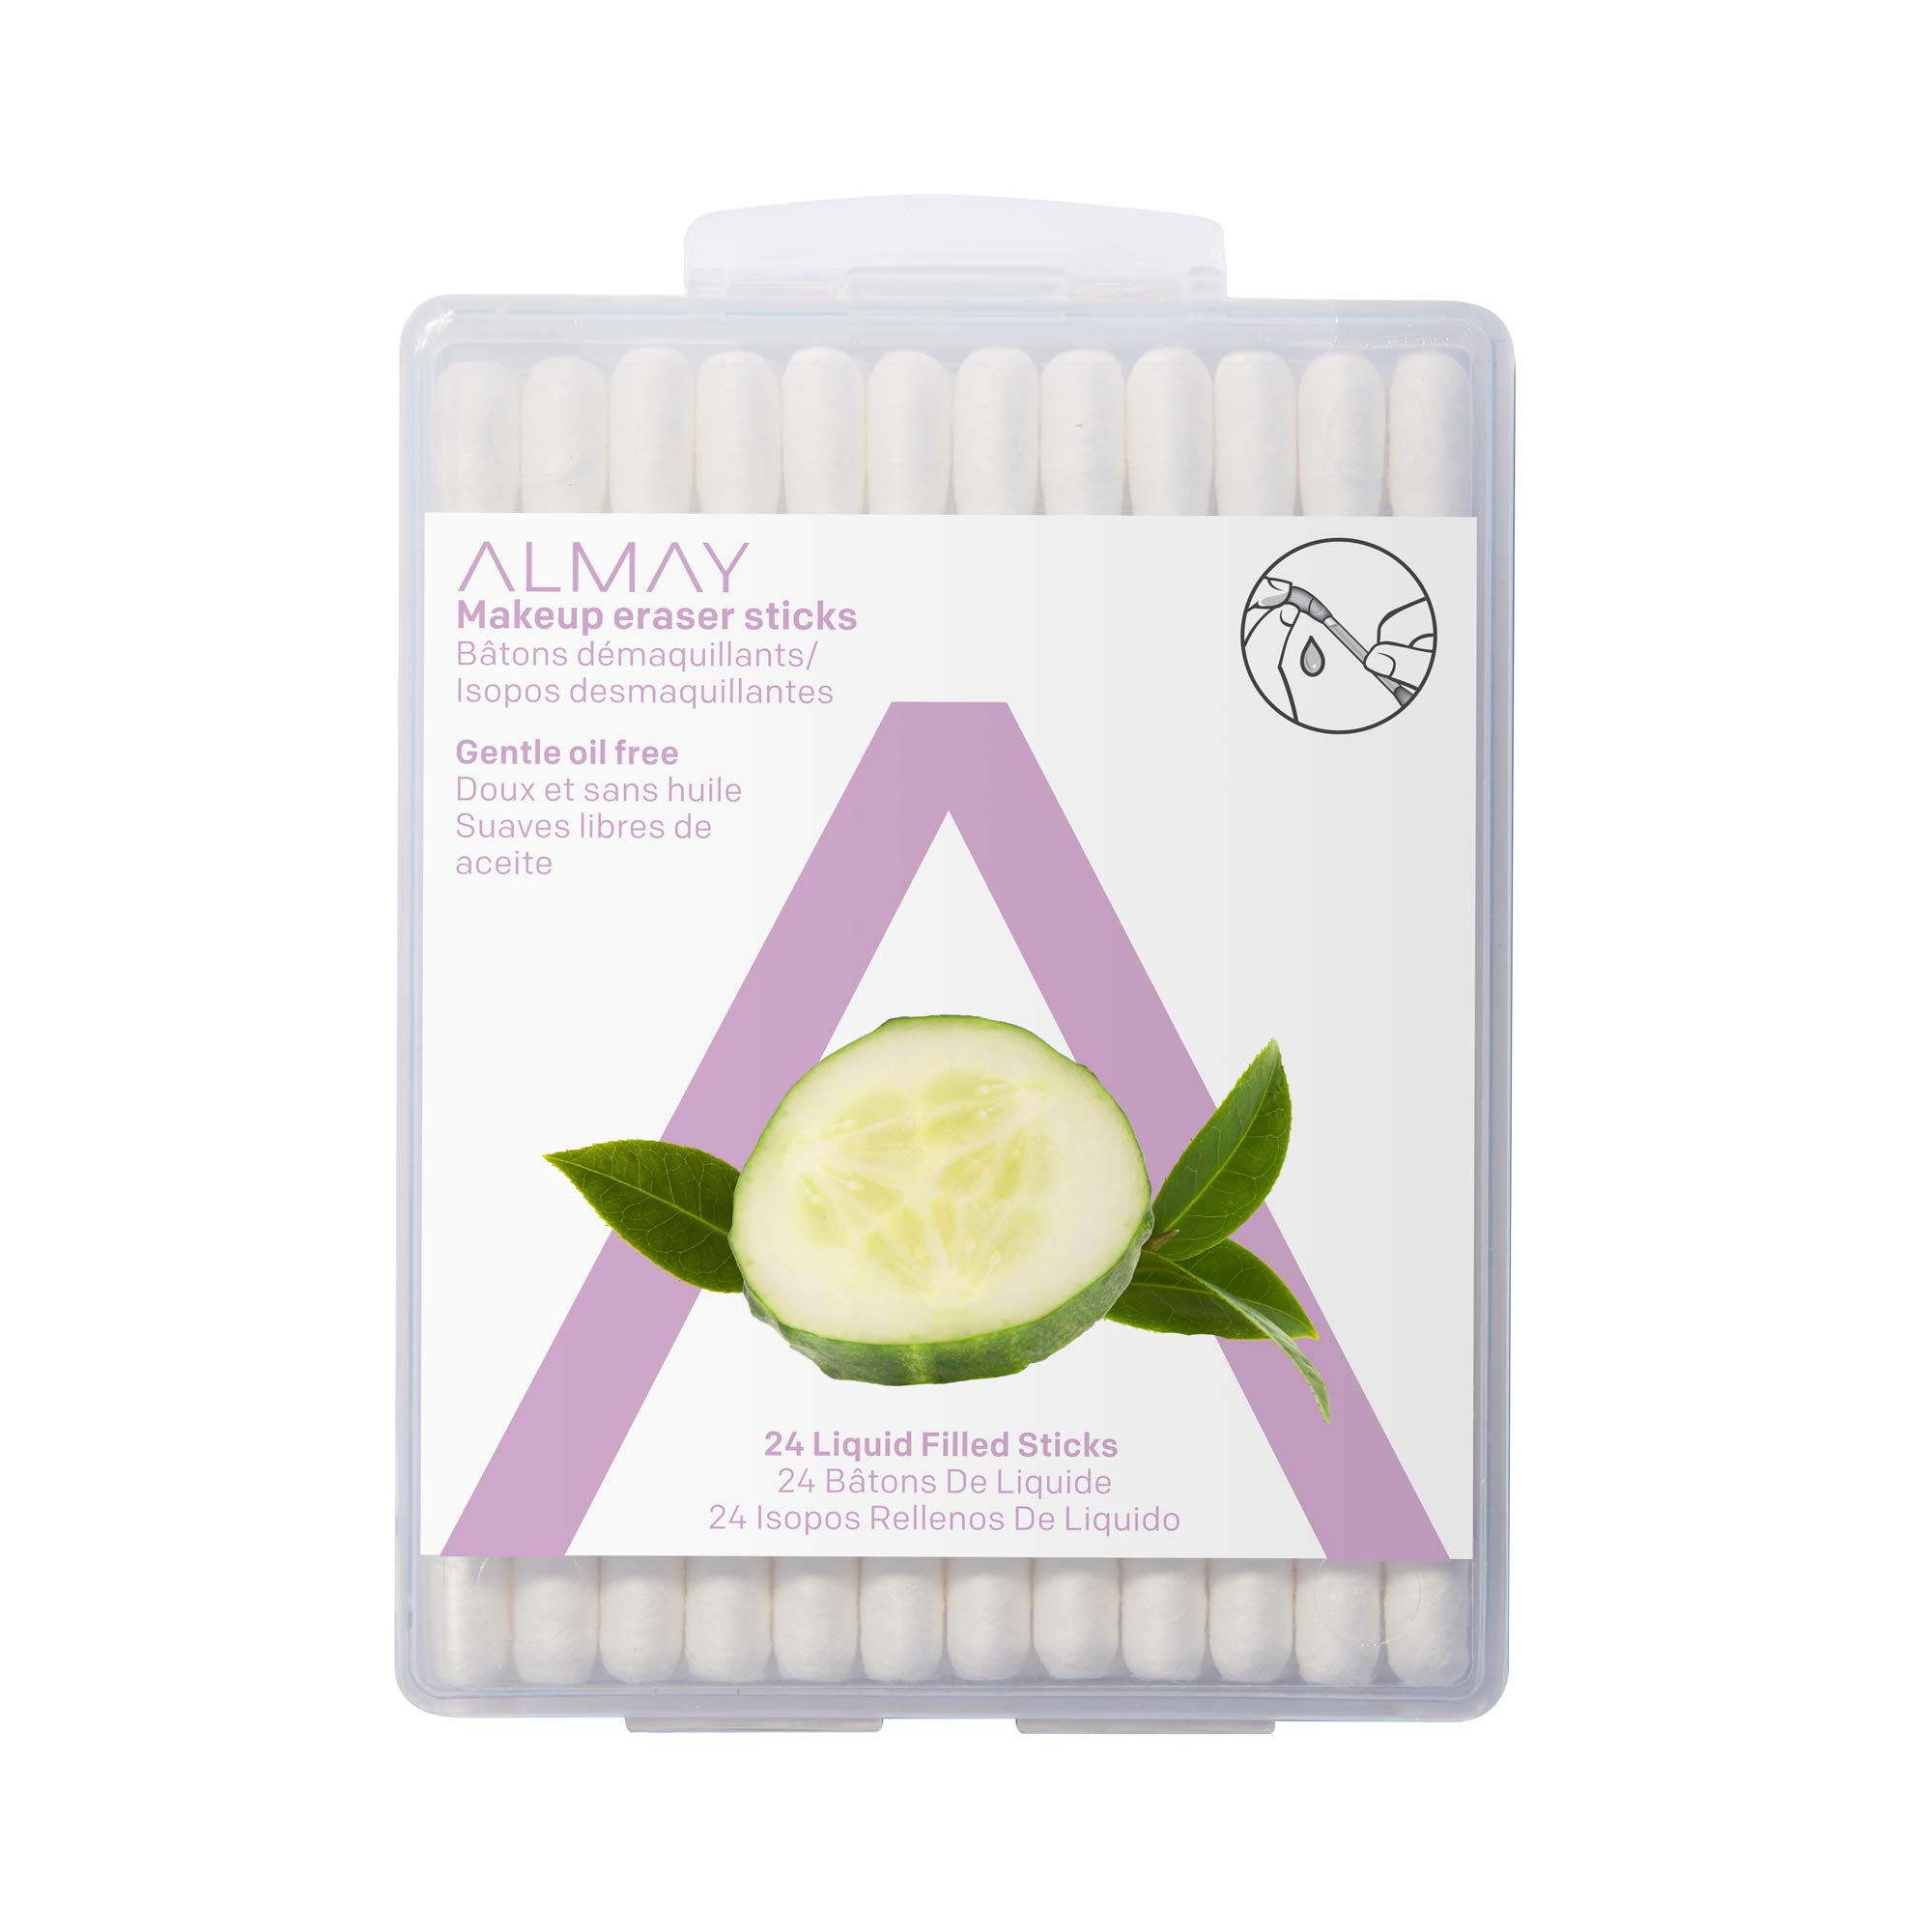 Almay Oil Free Makeup Eraser Sticks , 24 sticks, oil free make up remover